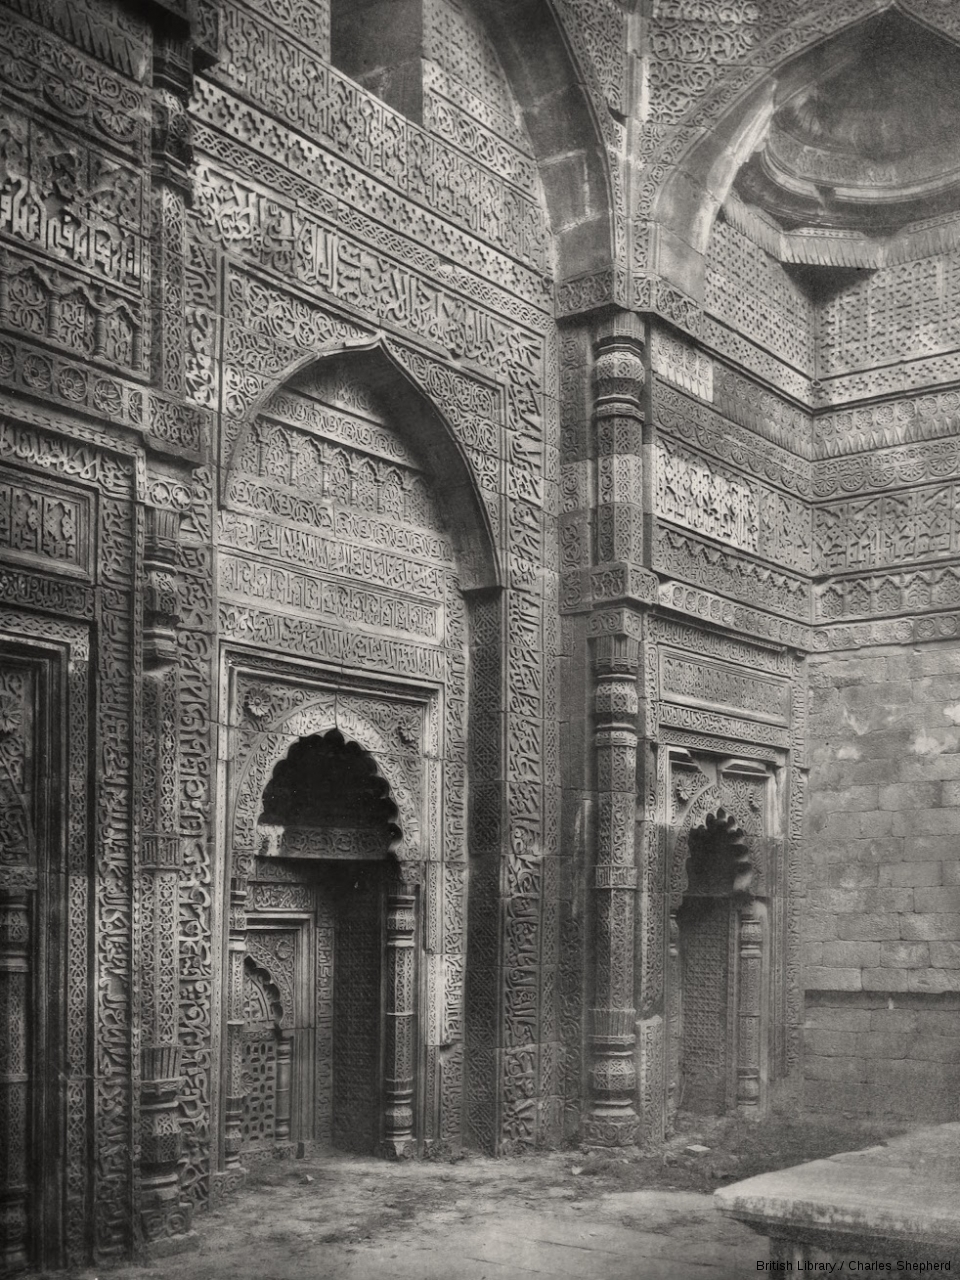 Shams-ud-Din's Gateway and Tomb. Interior of the Tomb [Iltutmish's Tomb, Qutb].